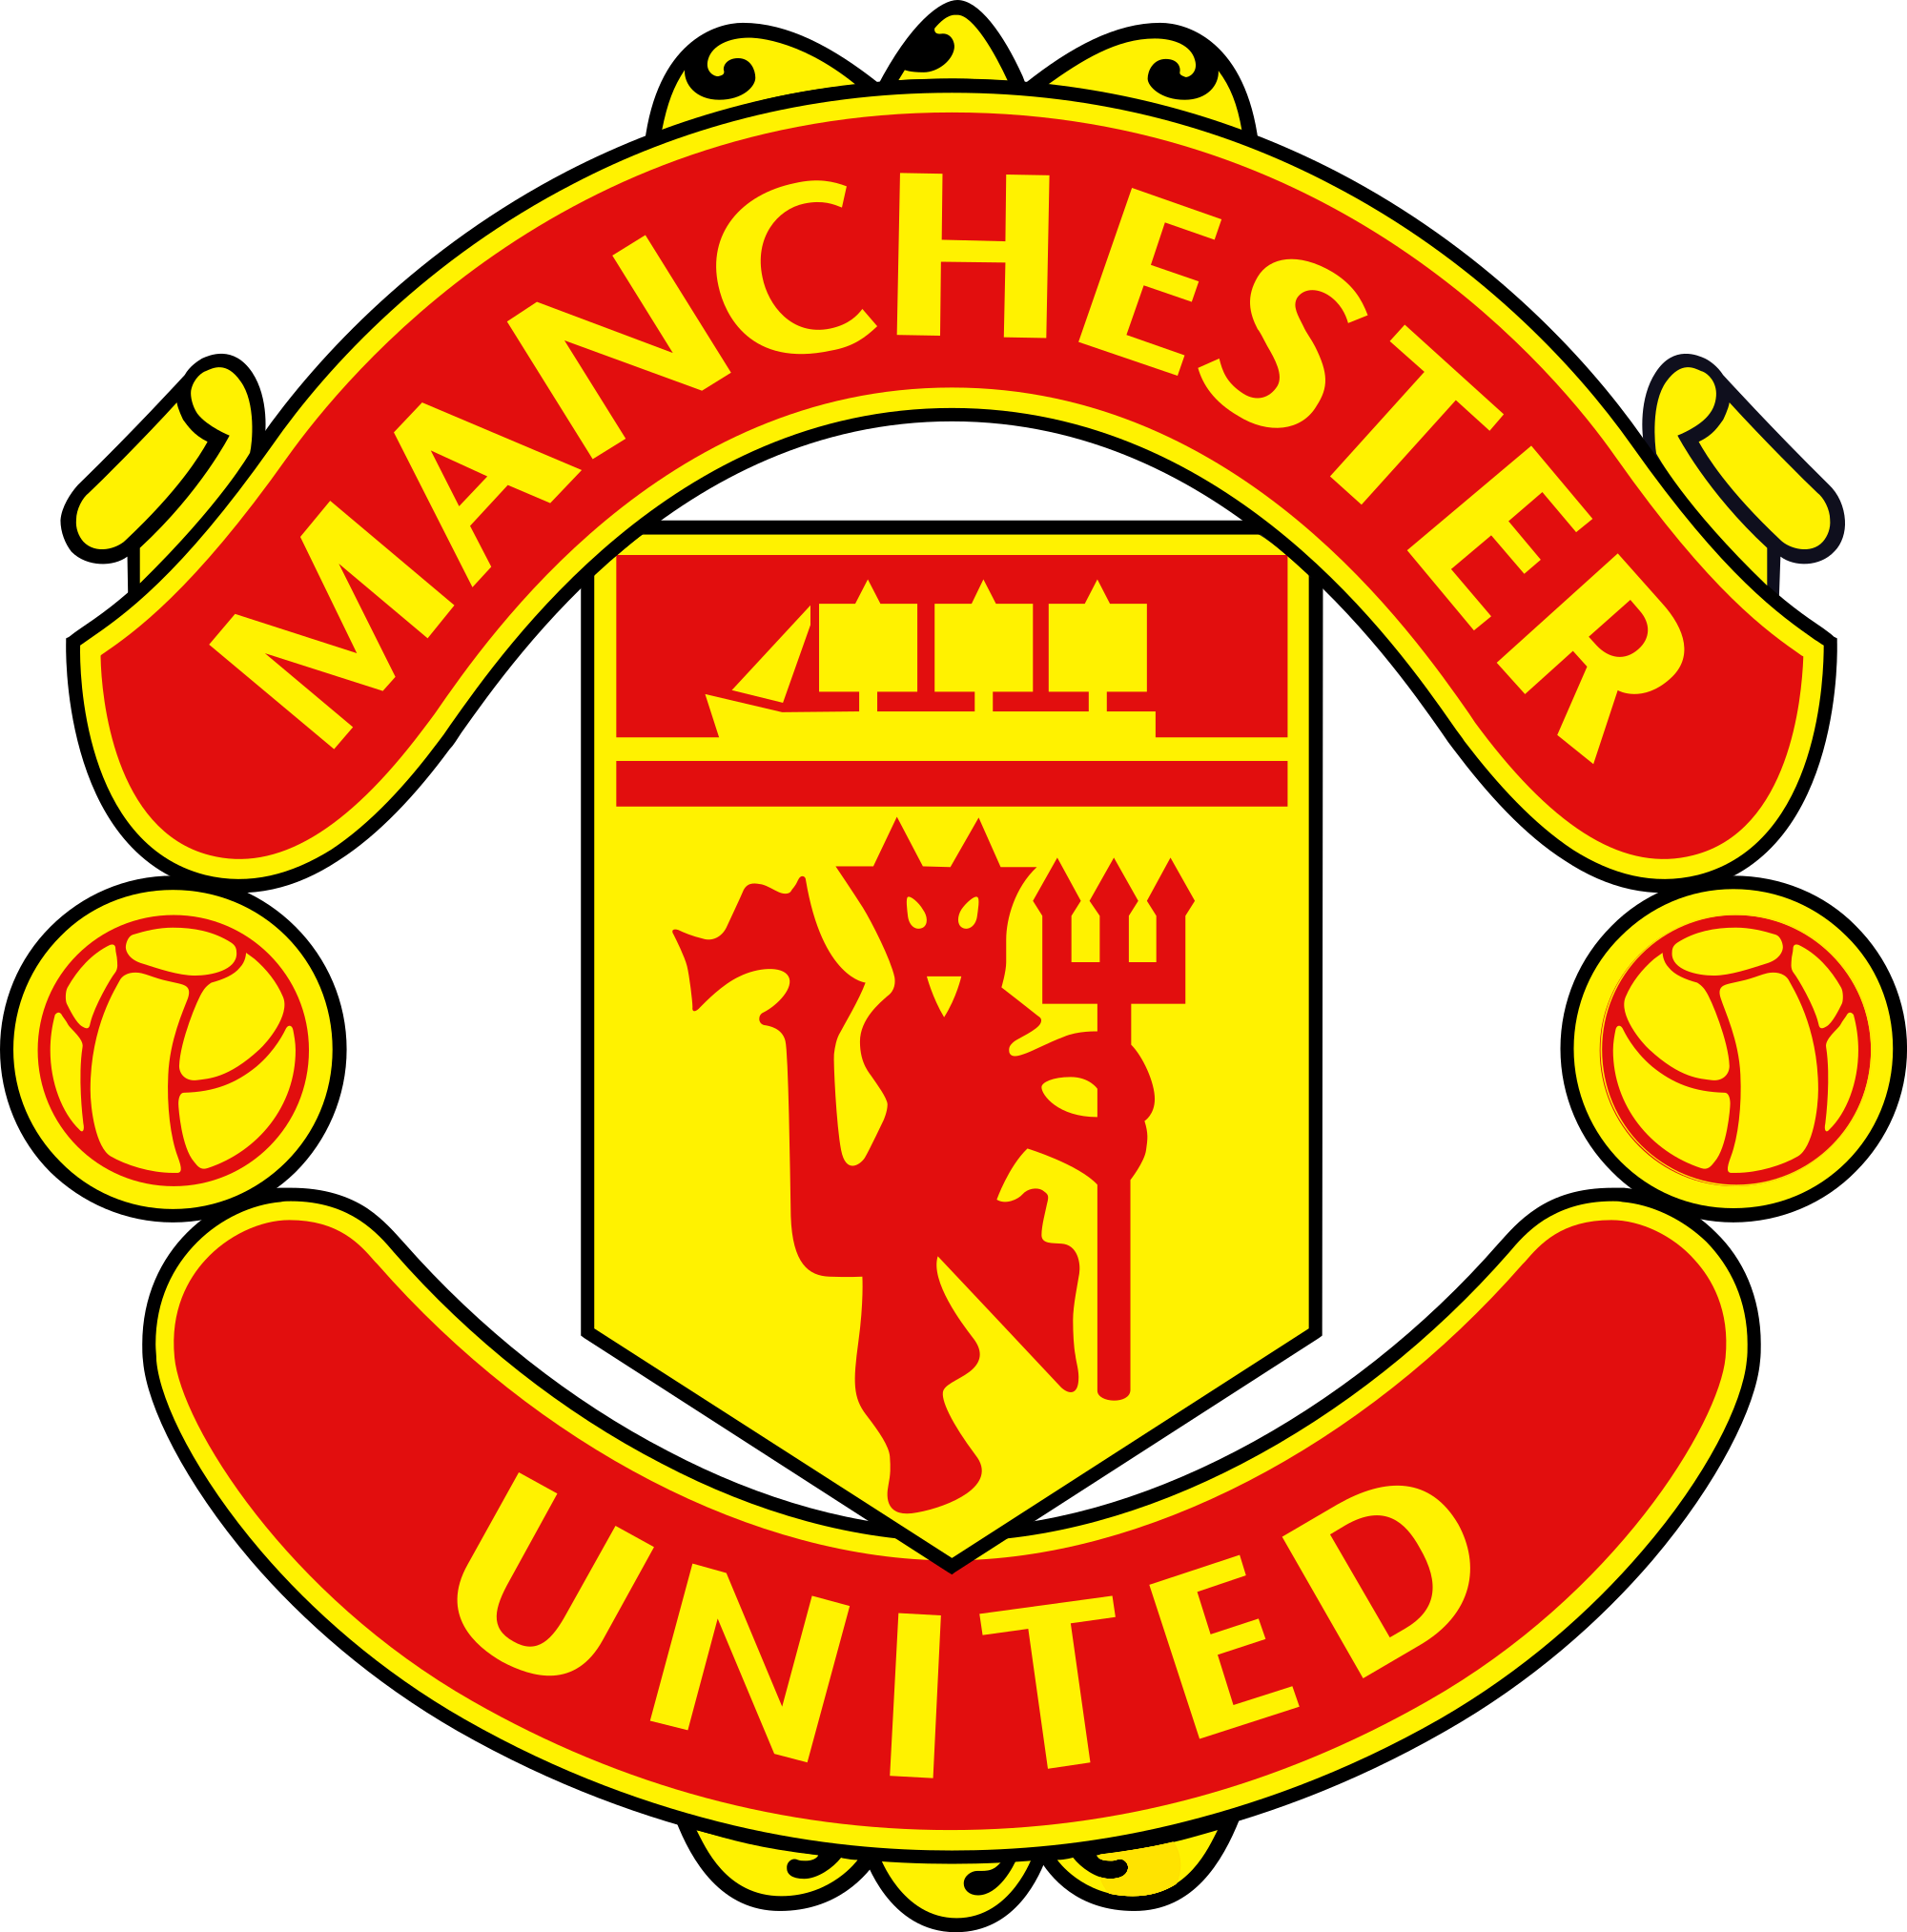 Datei:Manchester United FC.svg.